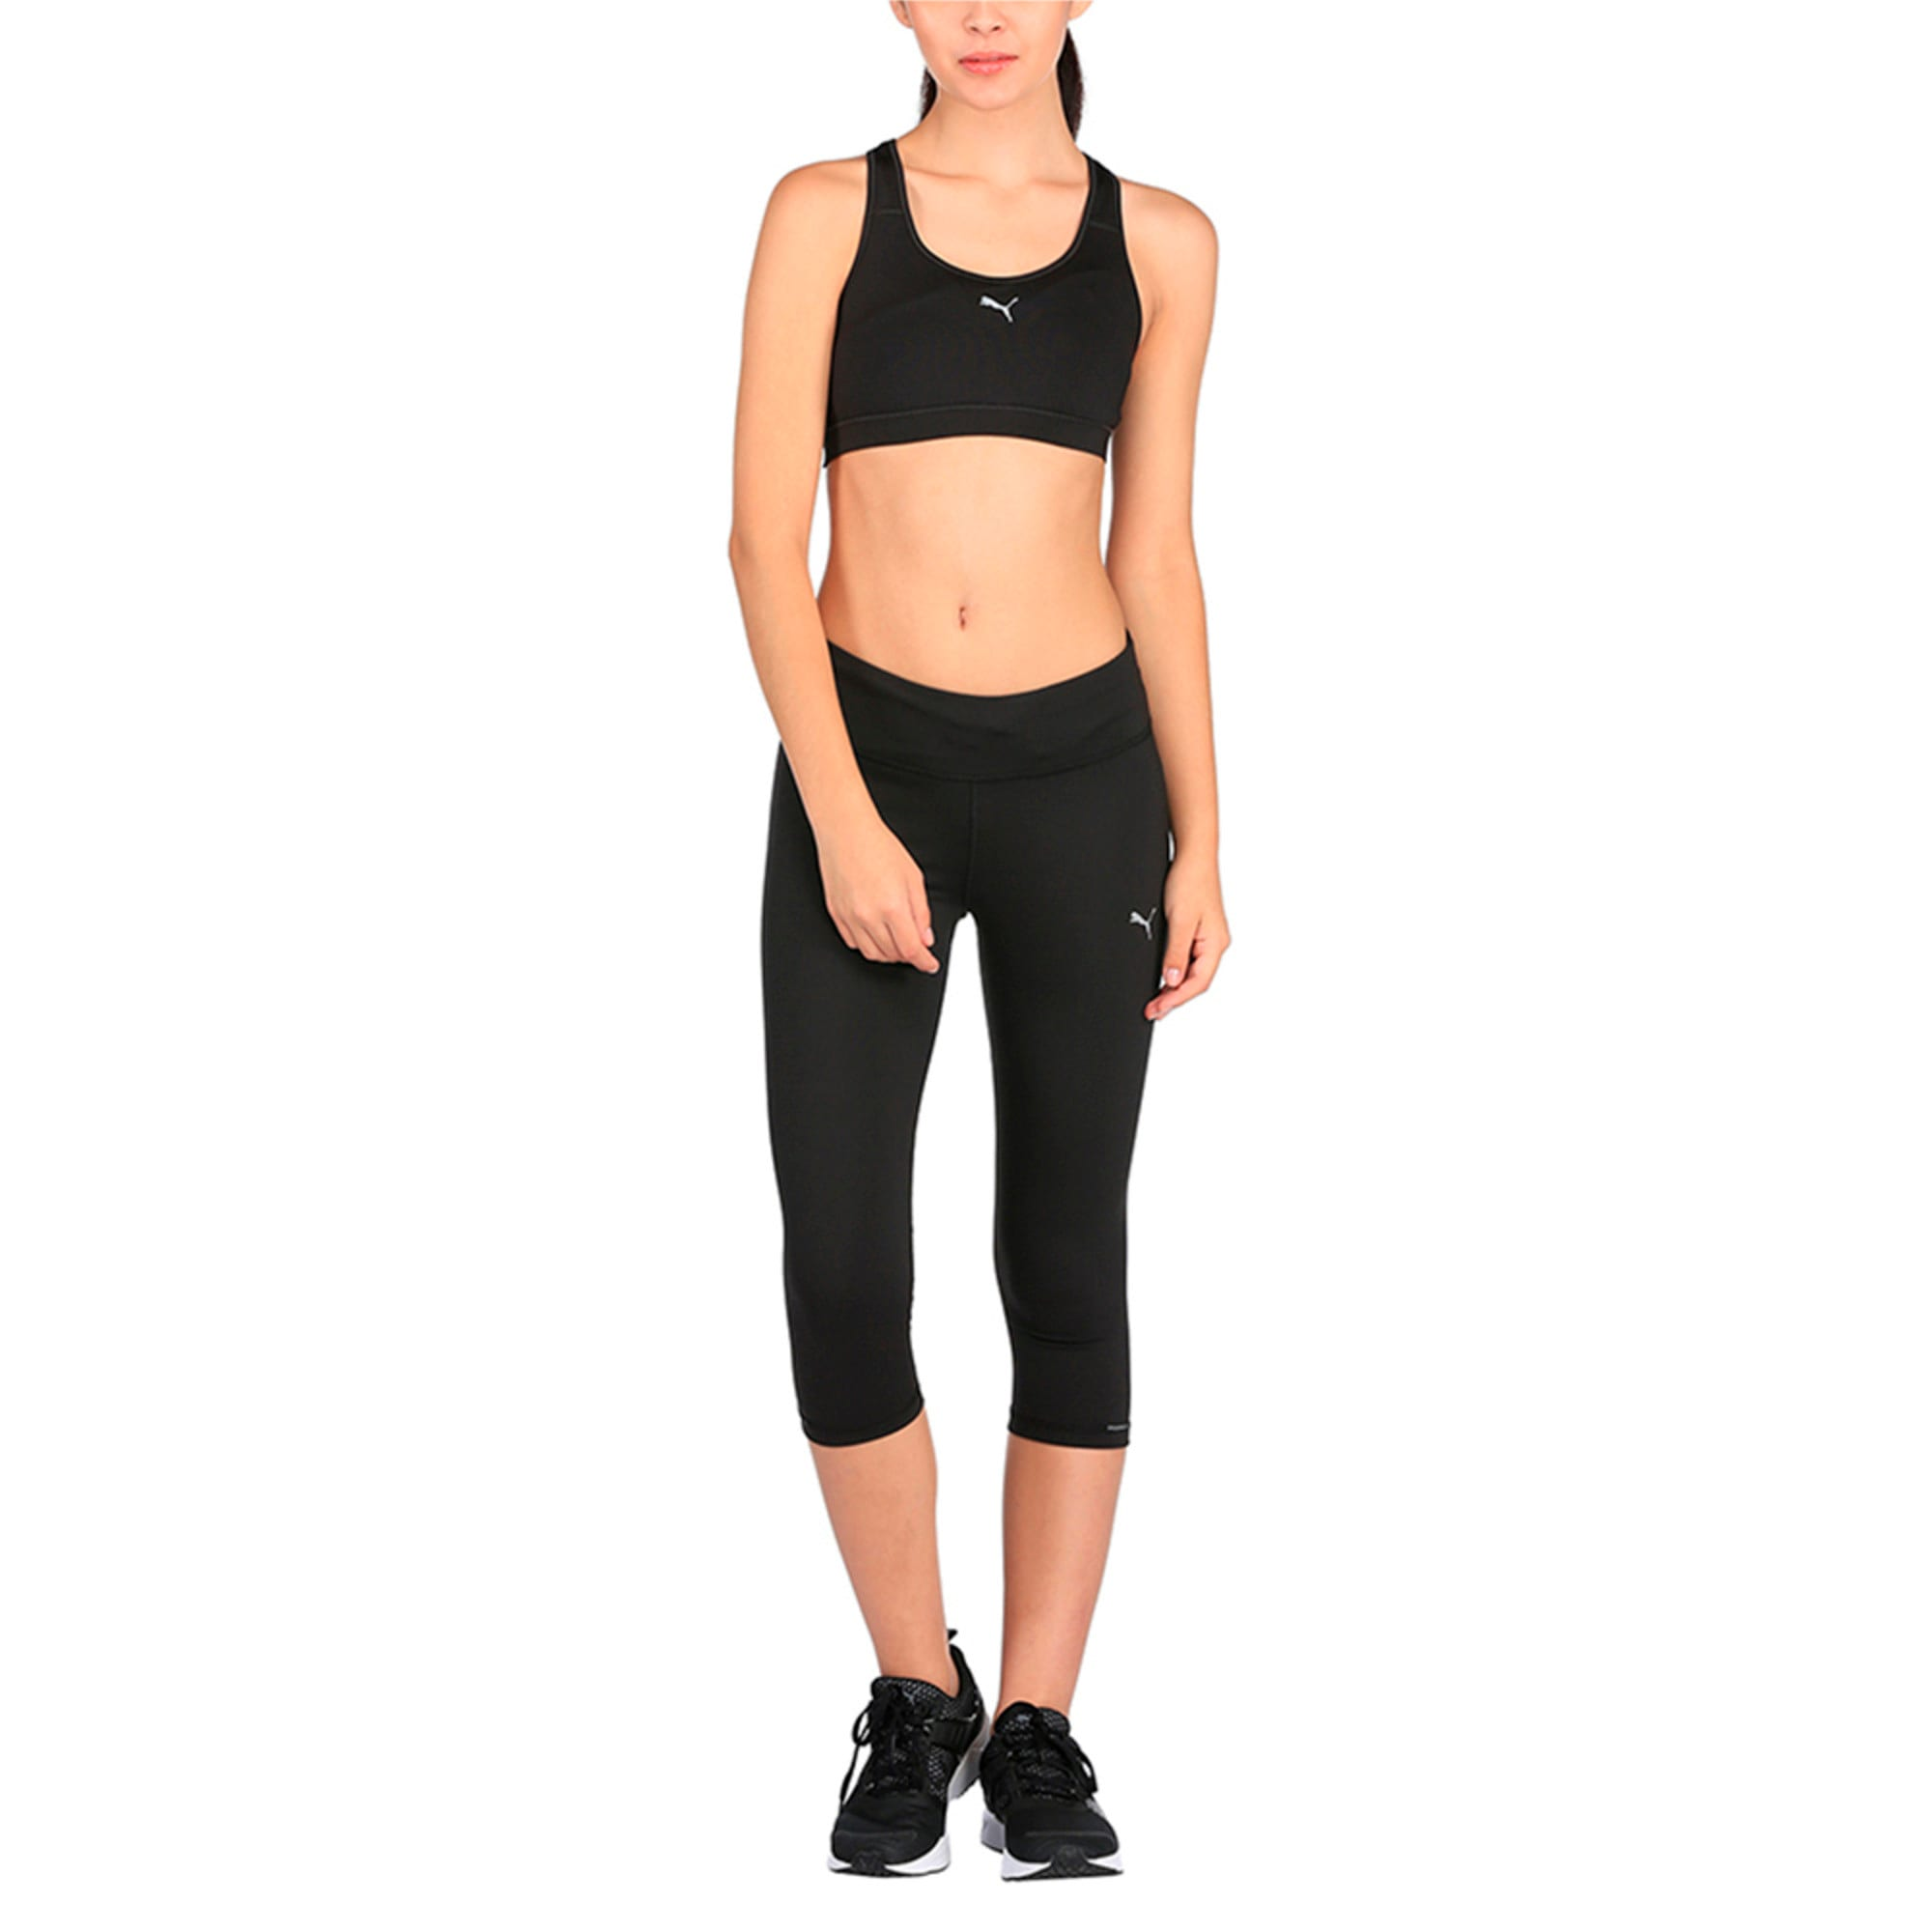 Thumbnail 3 of Running Women's 3/4 Tights, Puma Black, medium-IND